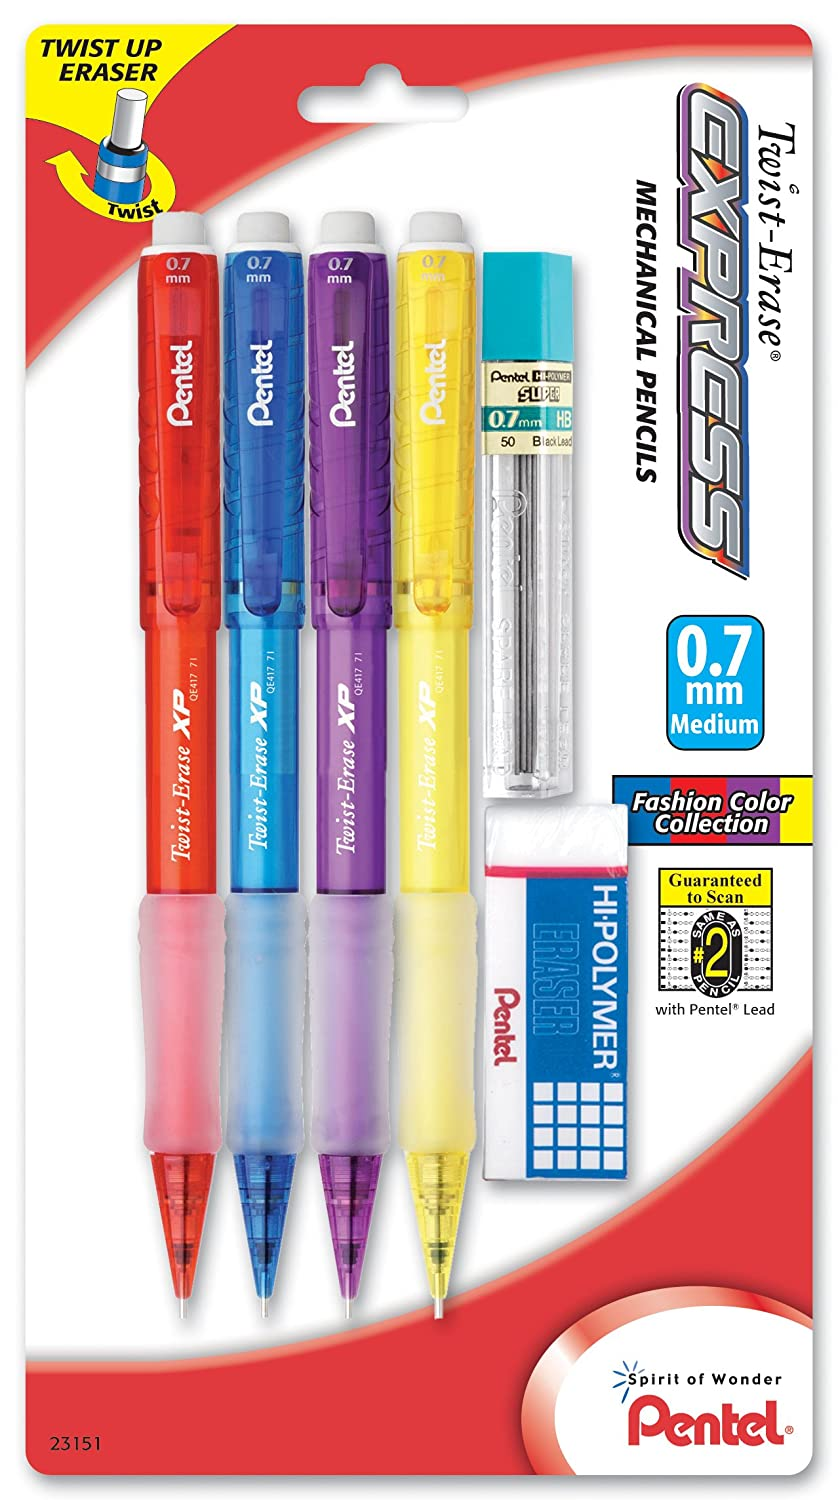 Pack of 4 with Lead and Small Block Eraser 0.7mm Pentel Twist-Erase Express Mechanical Pencil QE417FLZBP4 Assorted Fashion Barrels